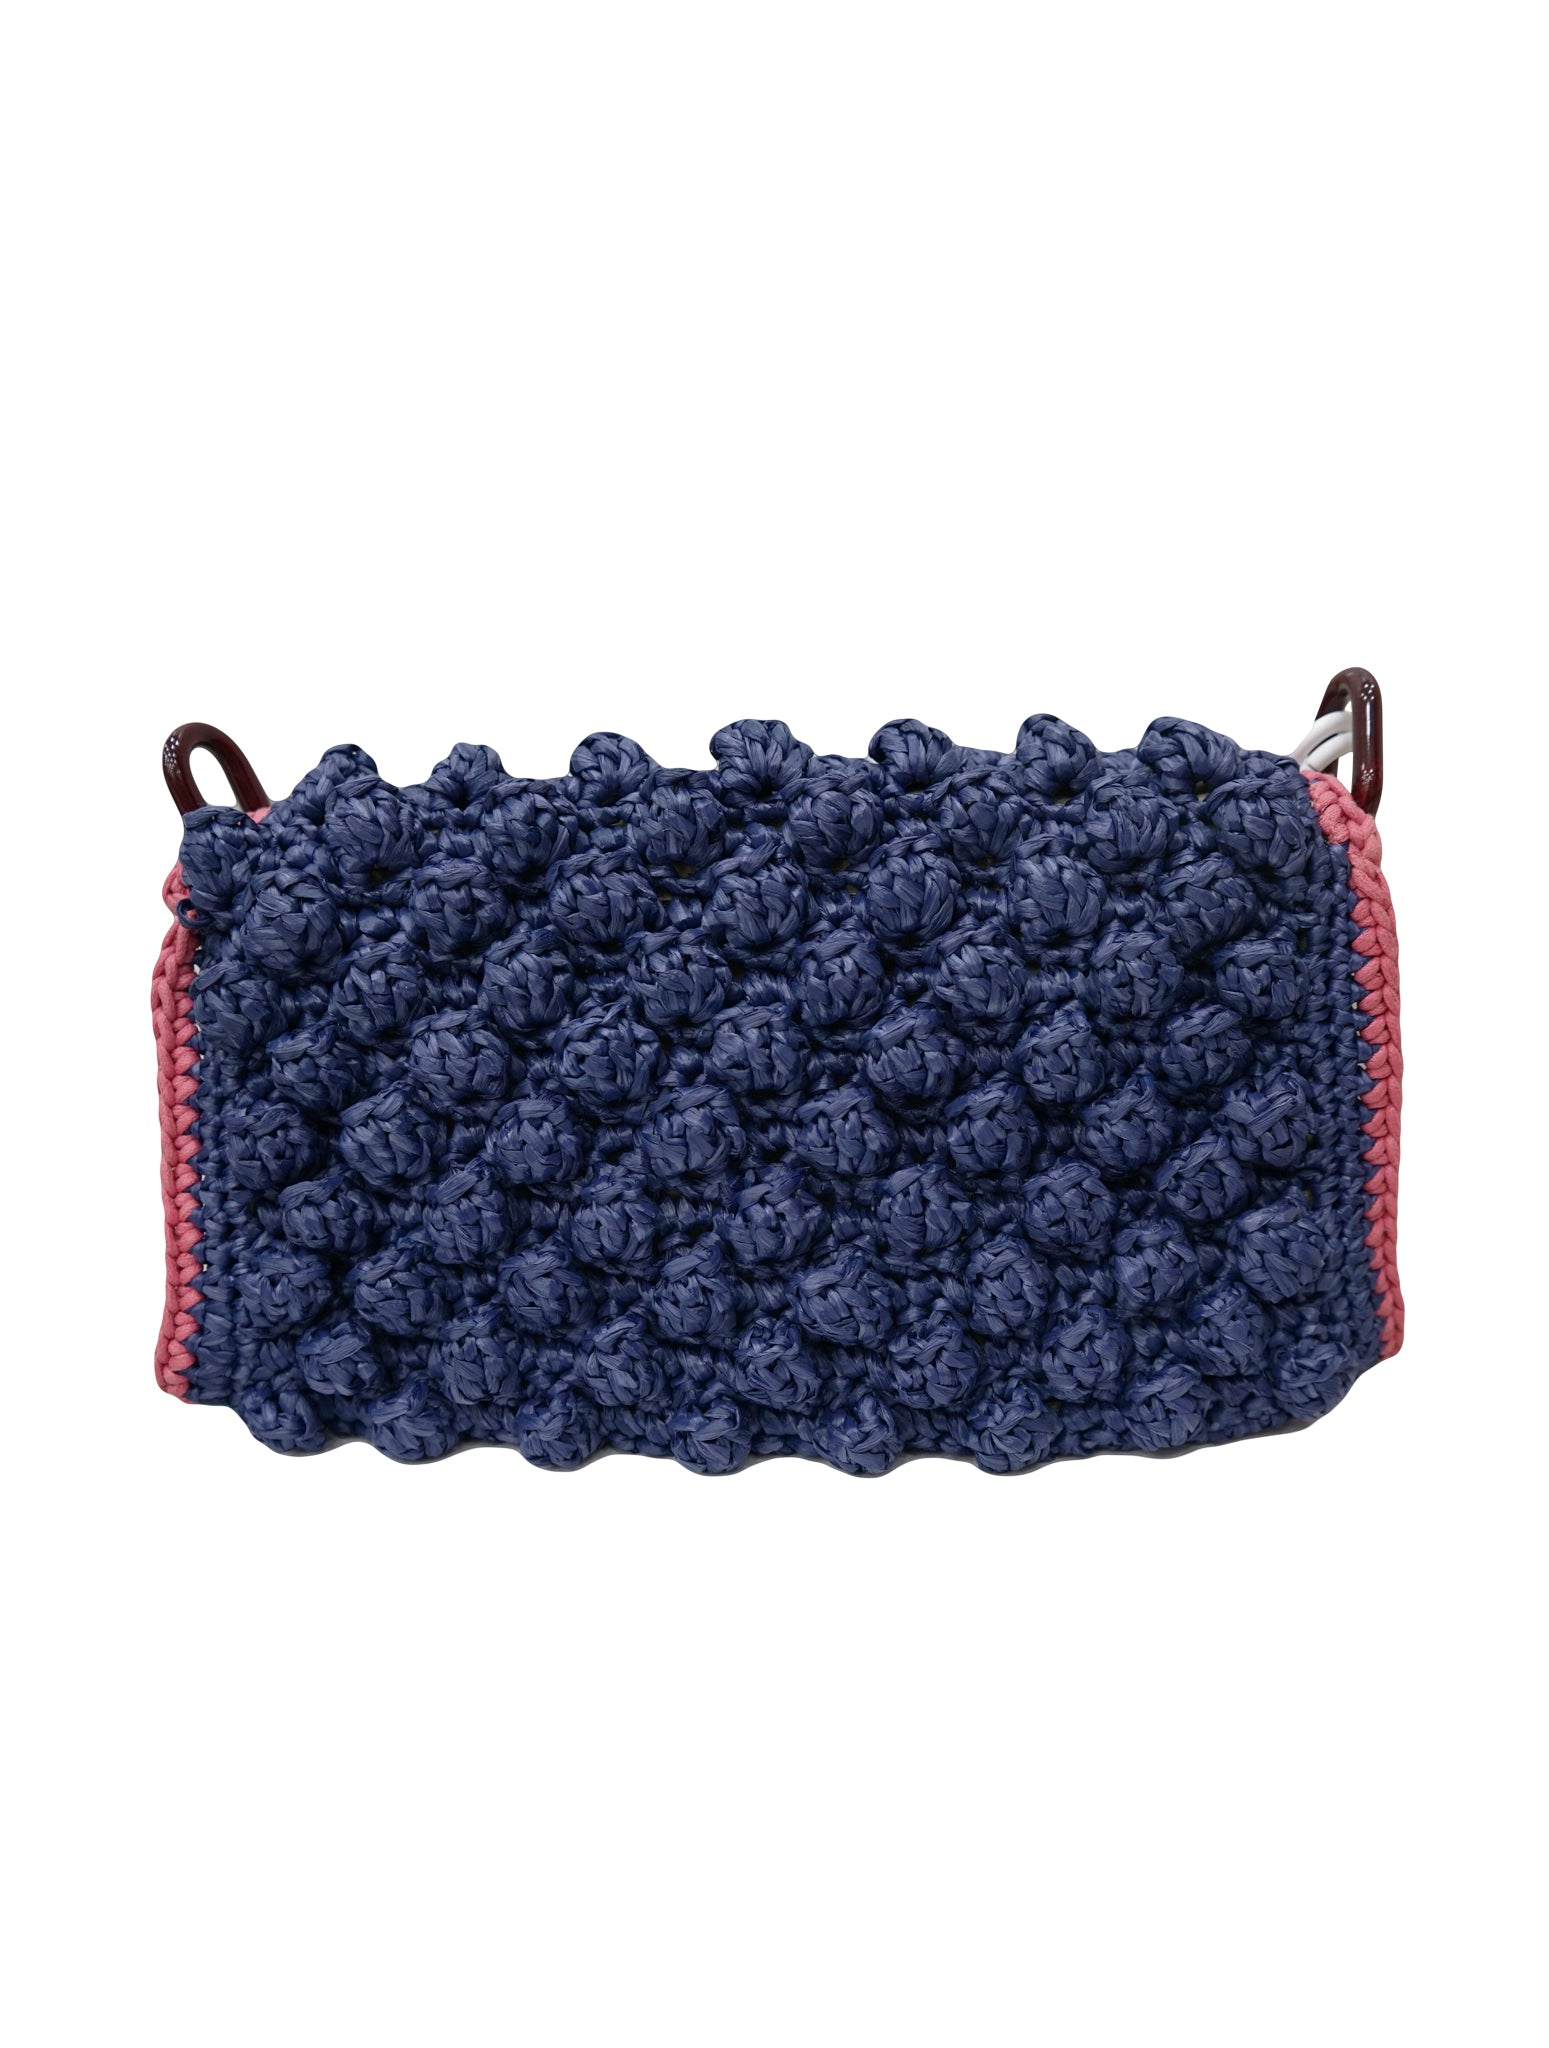 RAFFI AND BUBBLE STITCH SHOULDER BAG